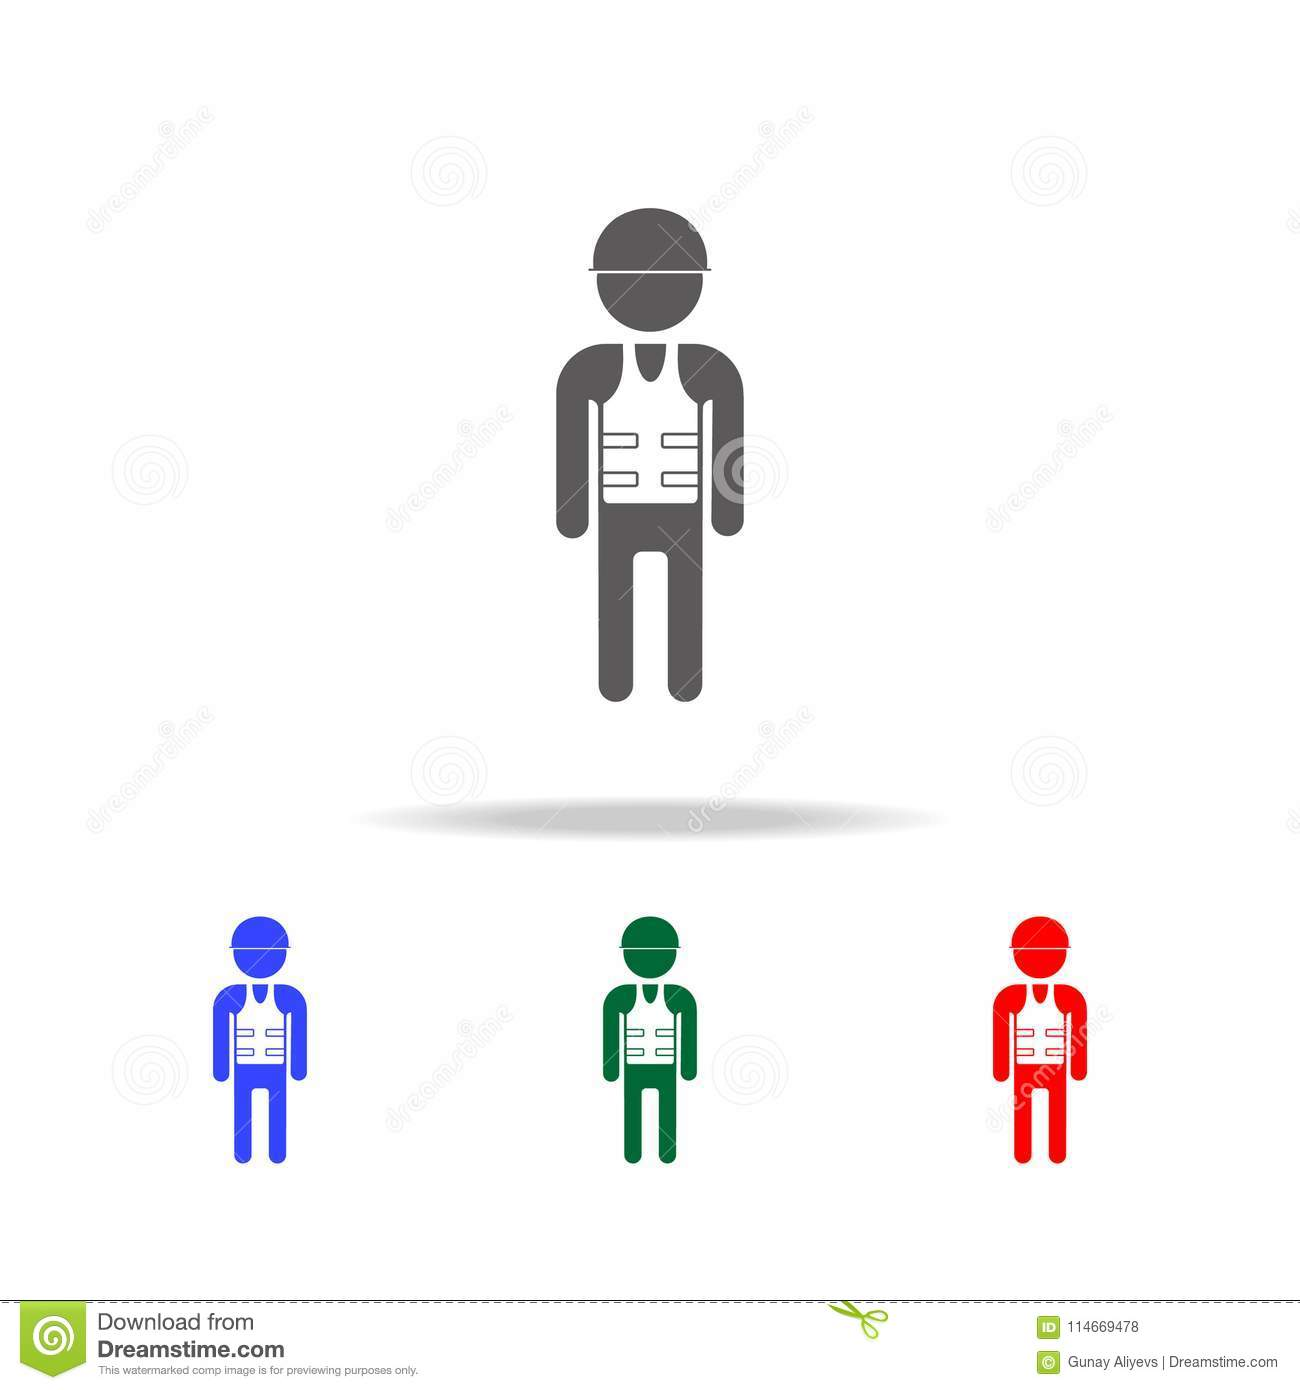 builder icon elements of people profession in multi colored icons